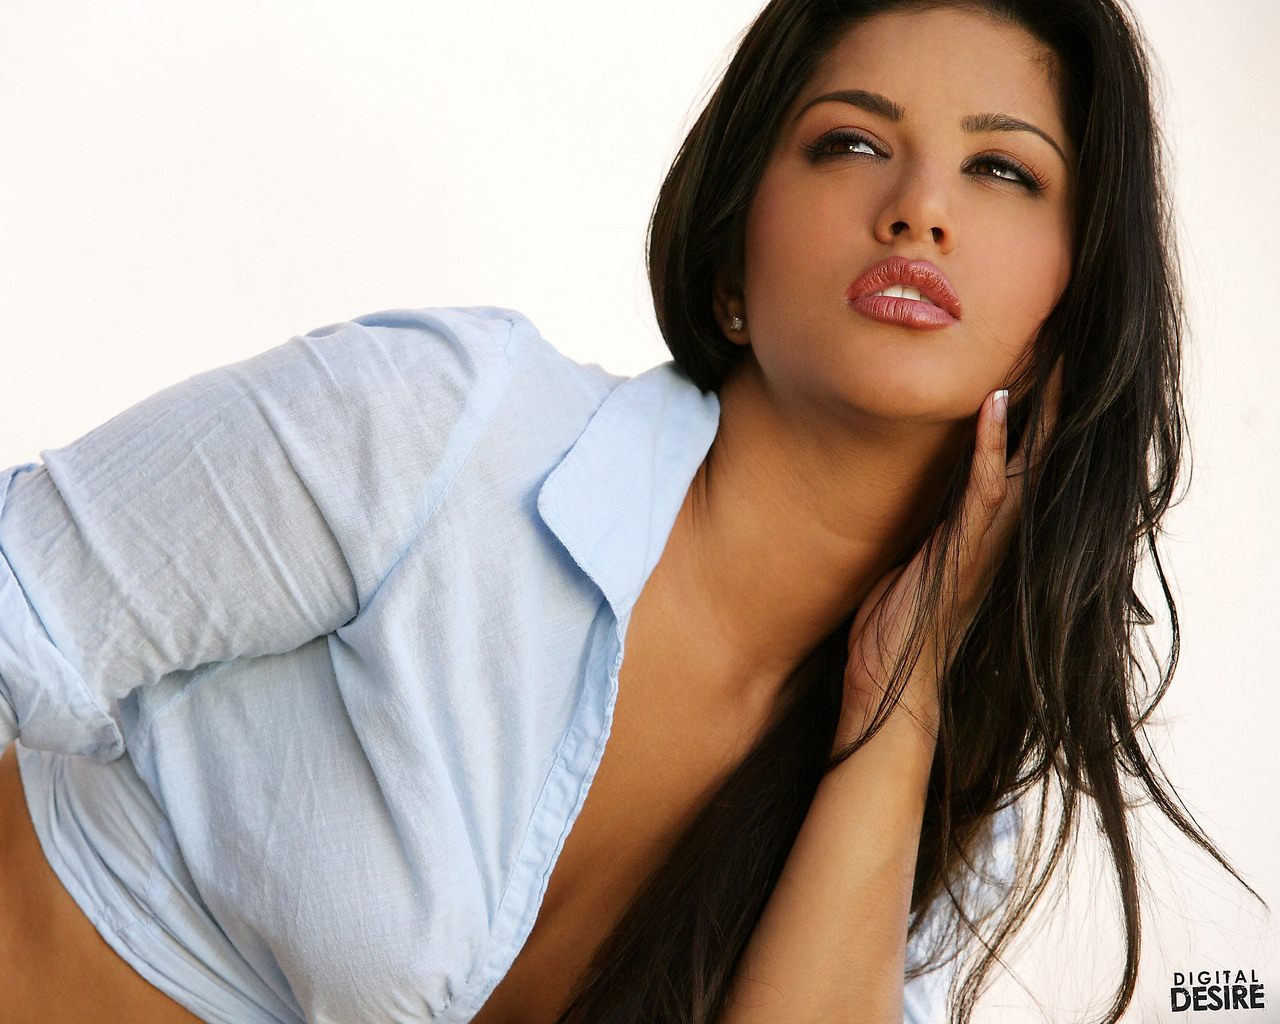 91 Sunny Leone Wallpapers On Wallpapersafari